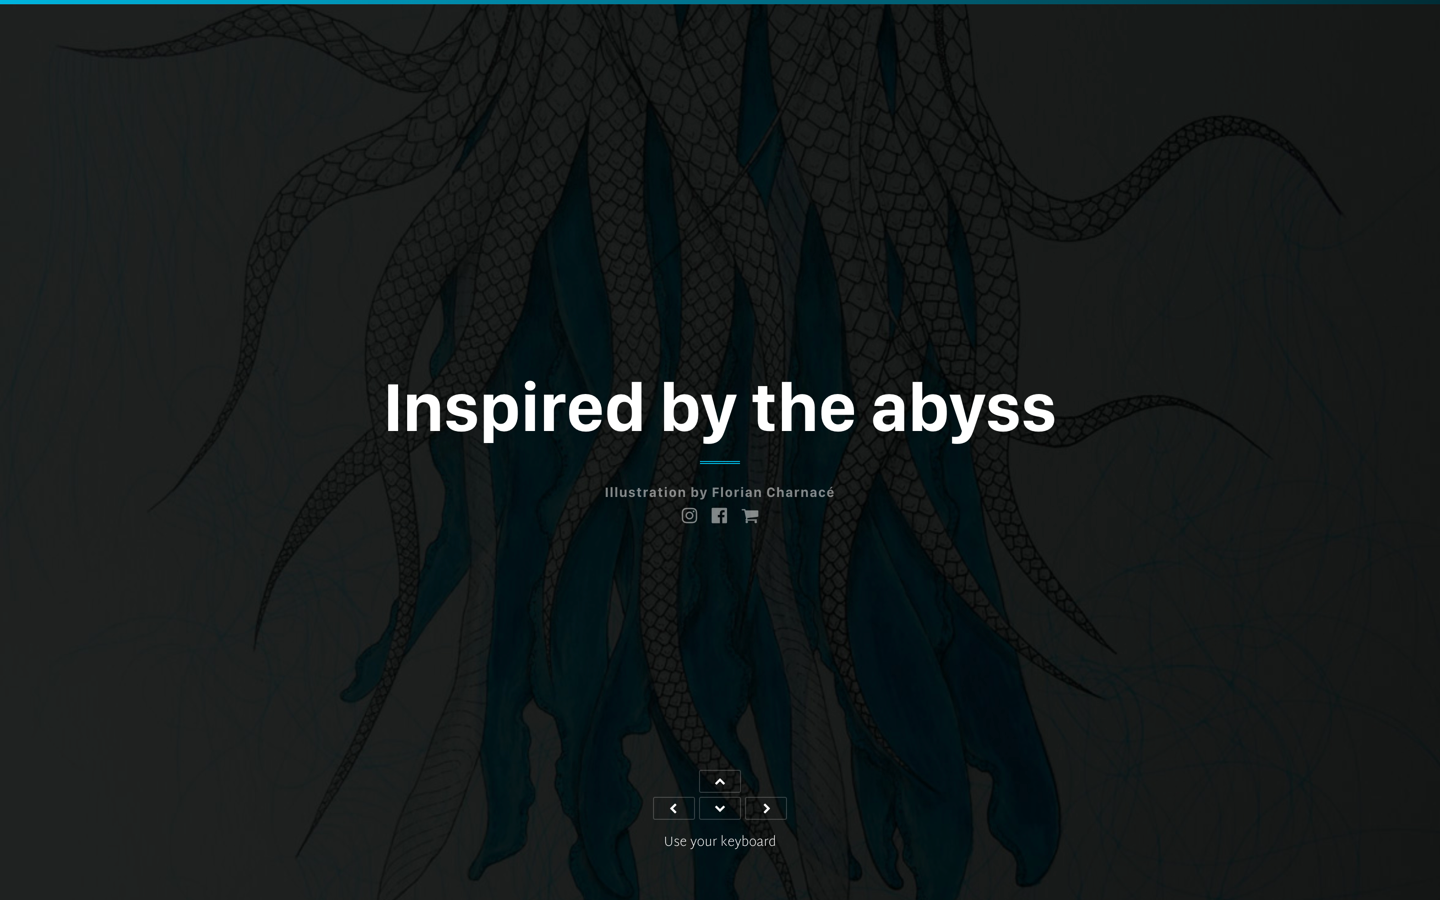 inspiredbytheabyss.com